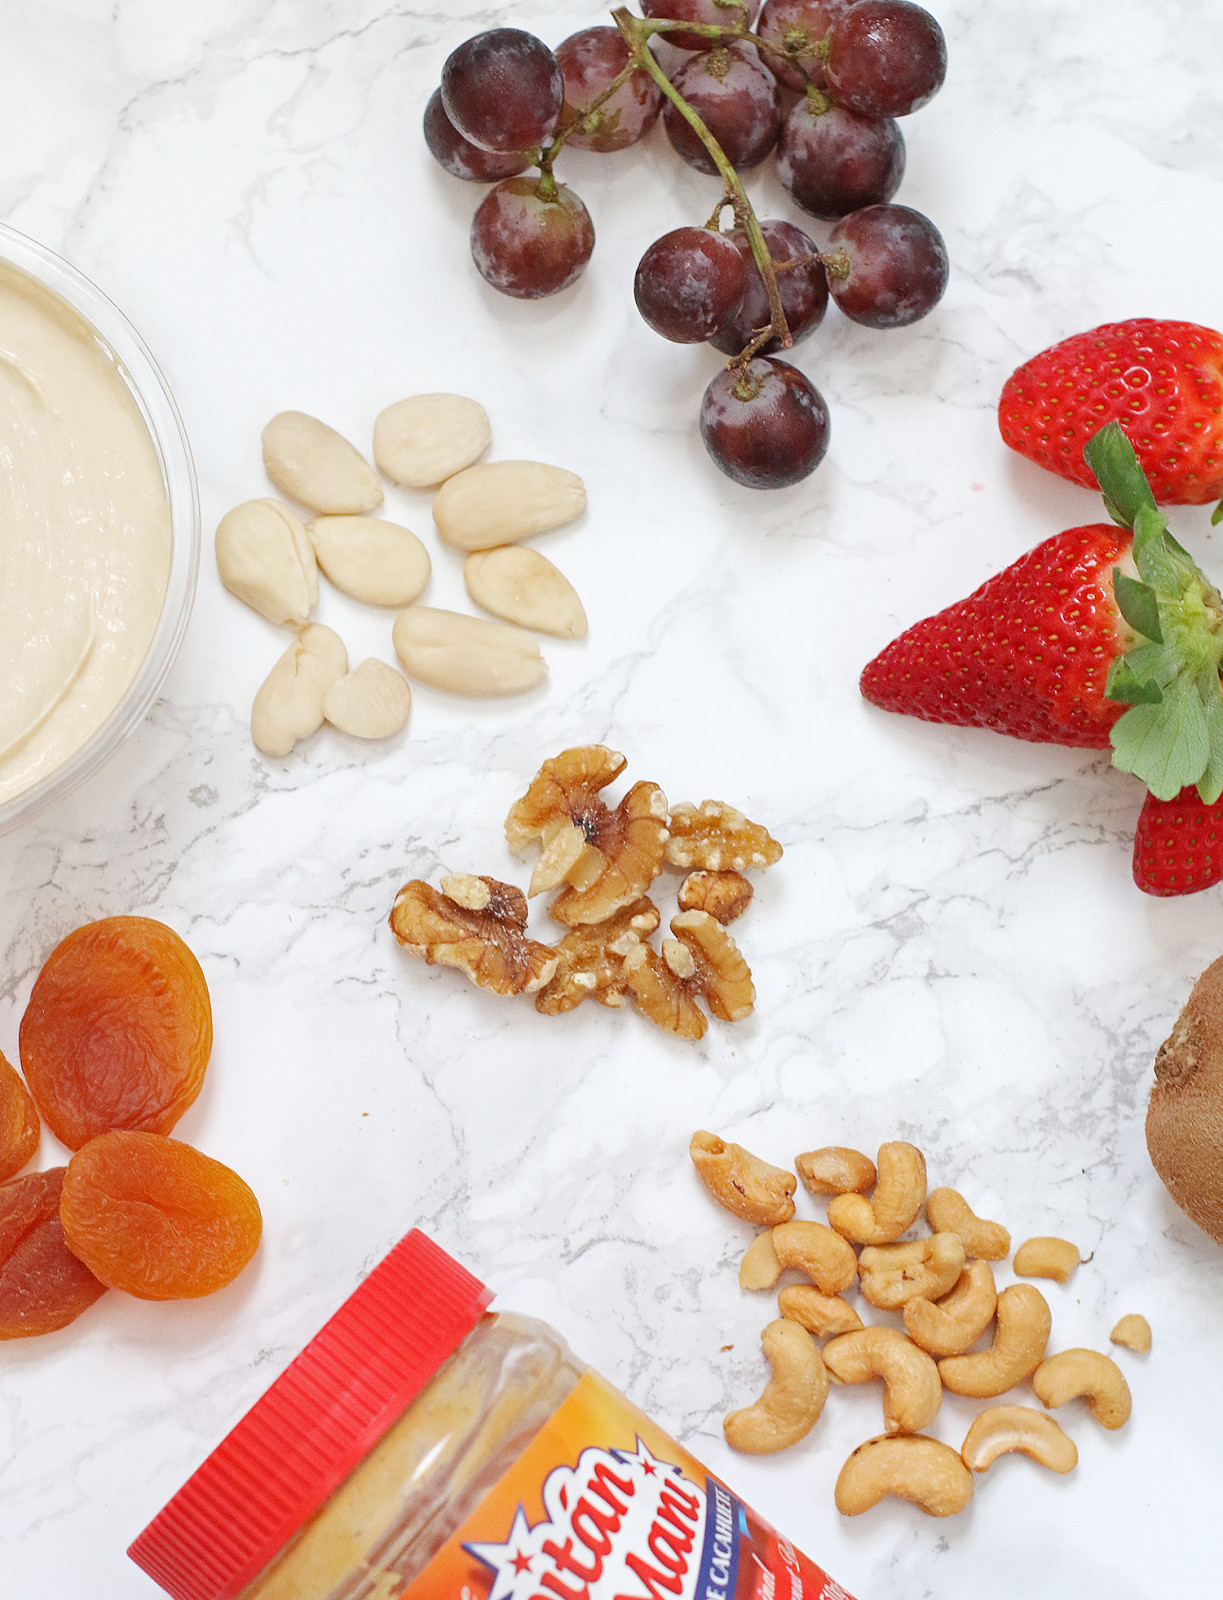 Easy Healthy Snacks For Work  Easy To Pack Healthy Snacks For Work